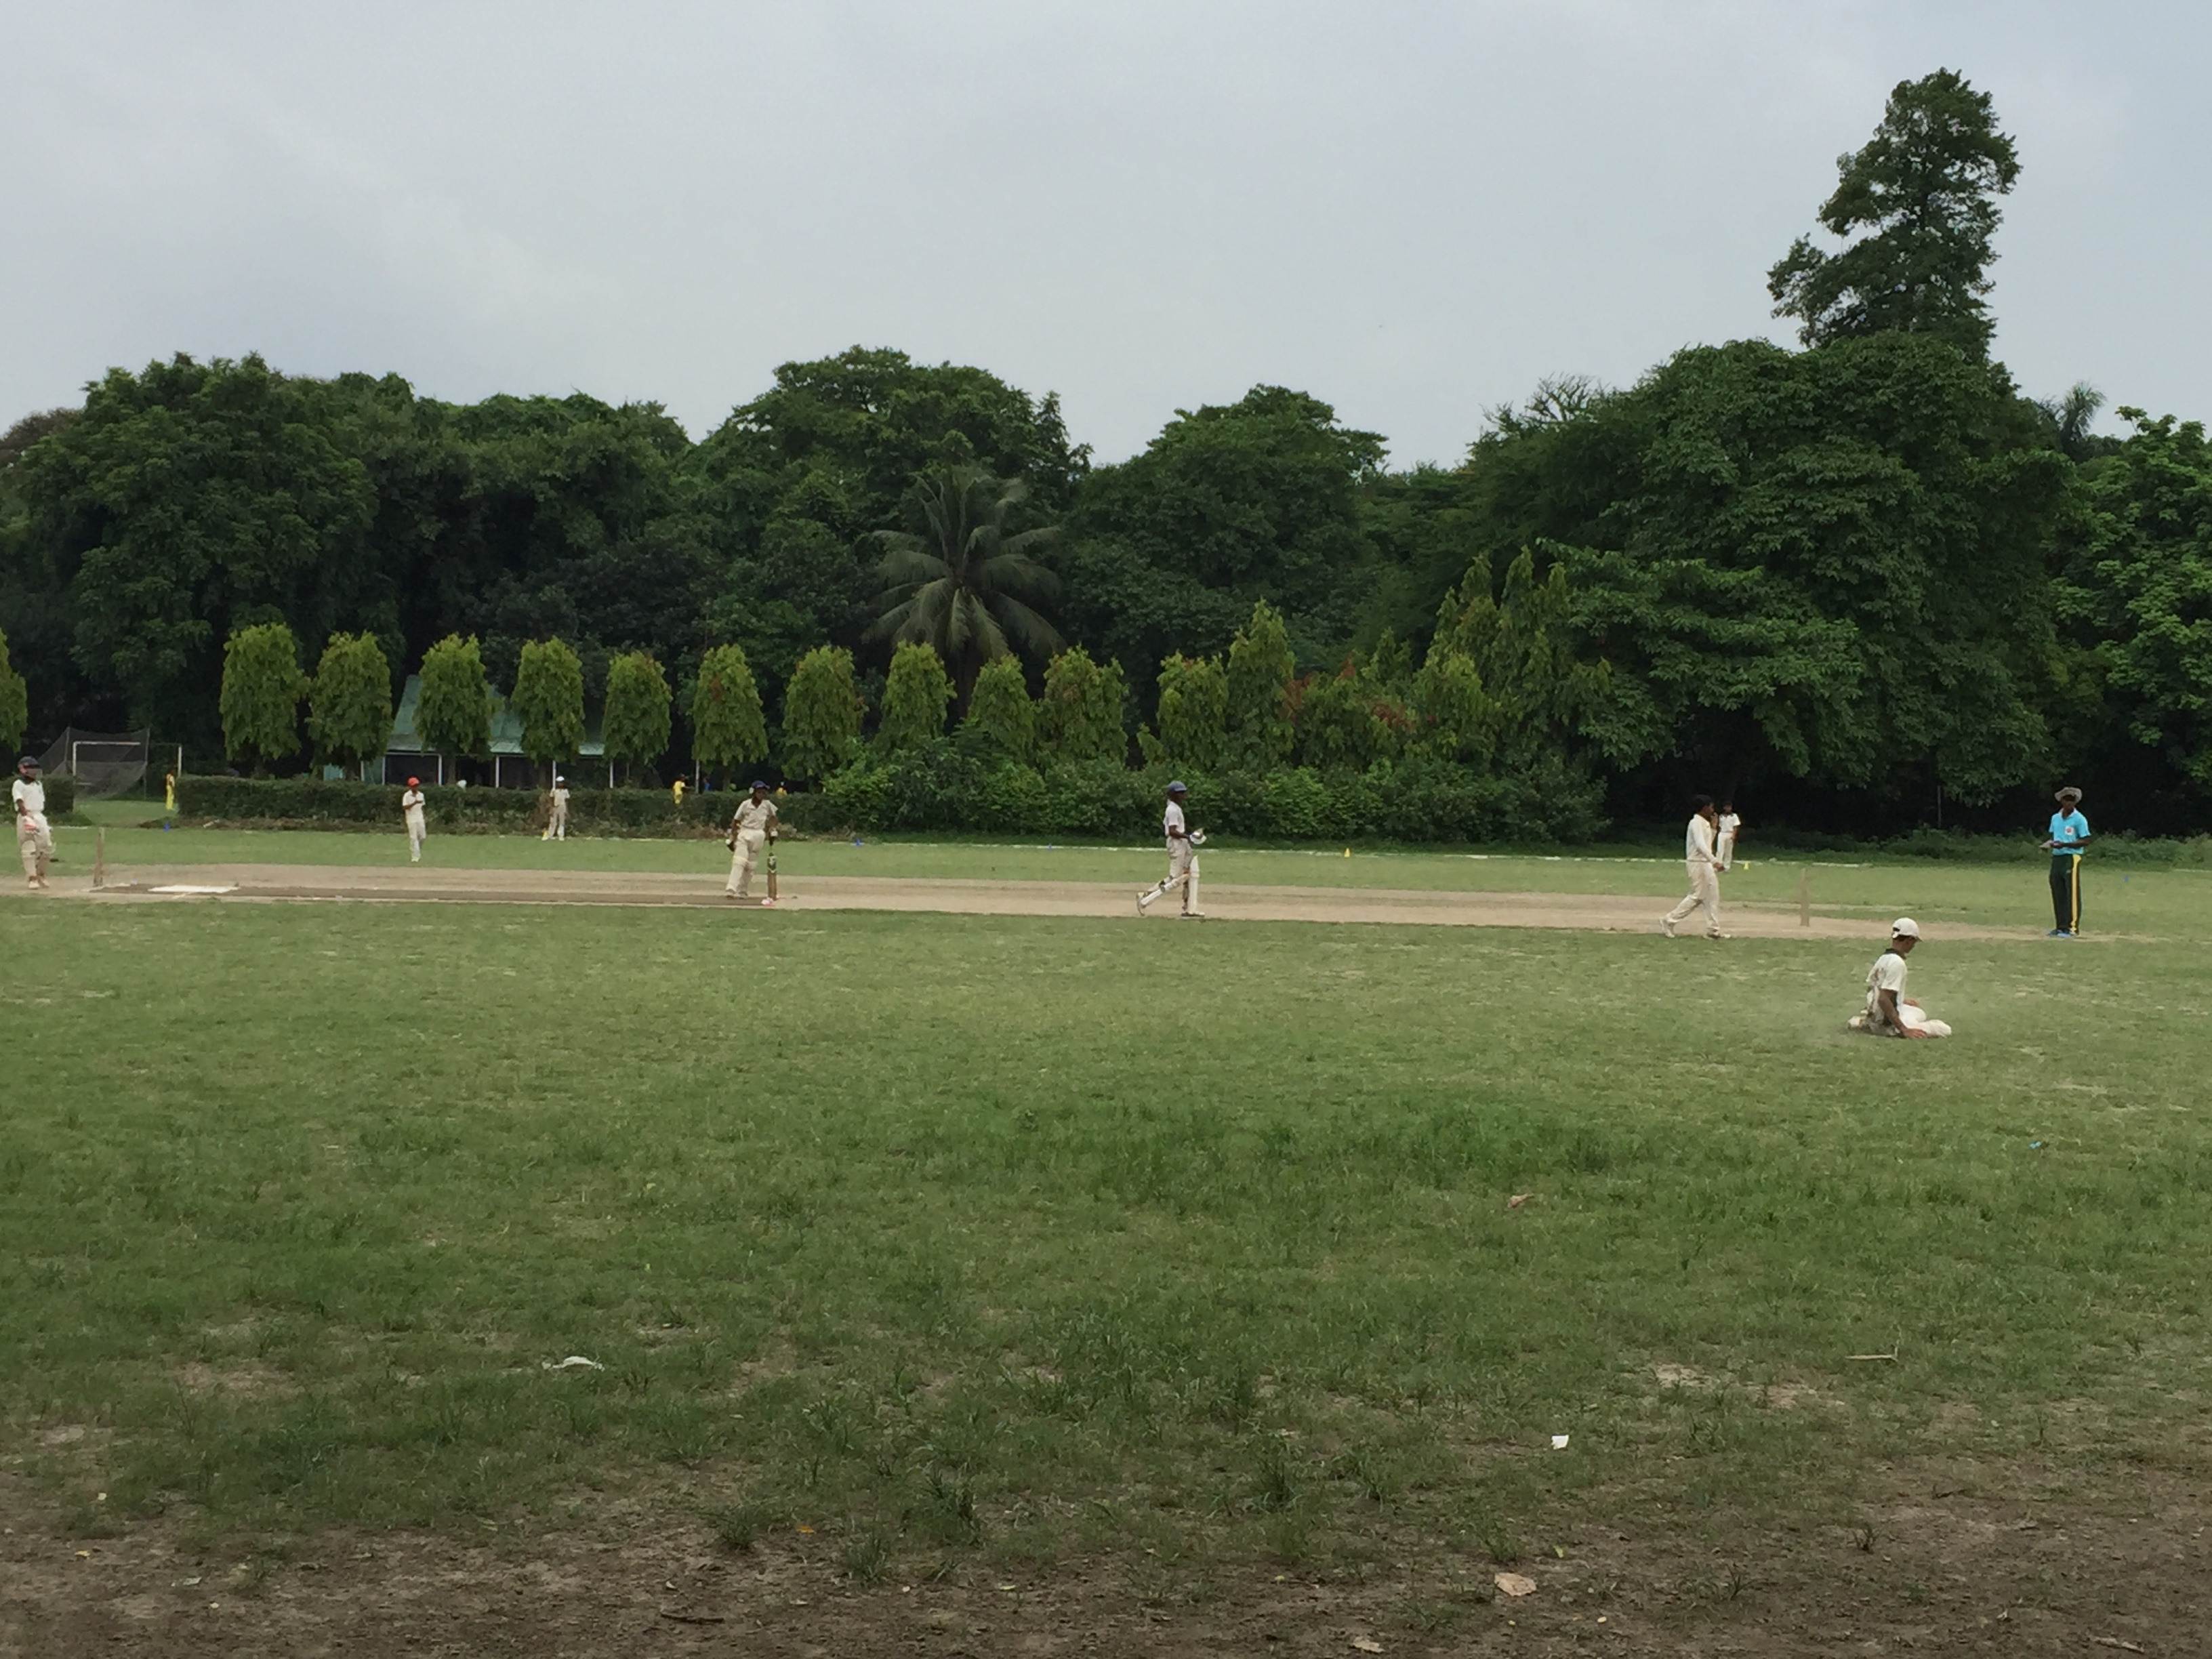 An under-14 cricket match in progress. Image by Siddhartha Roy